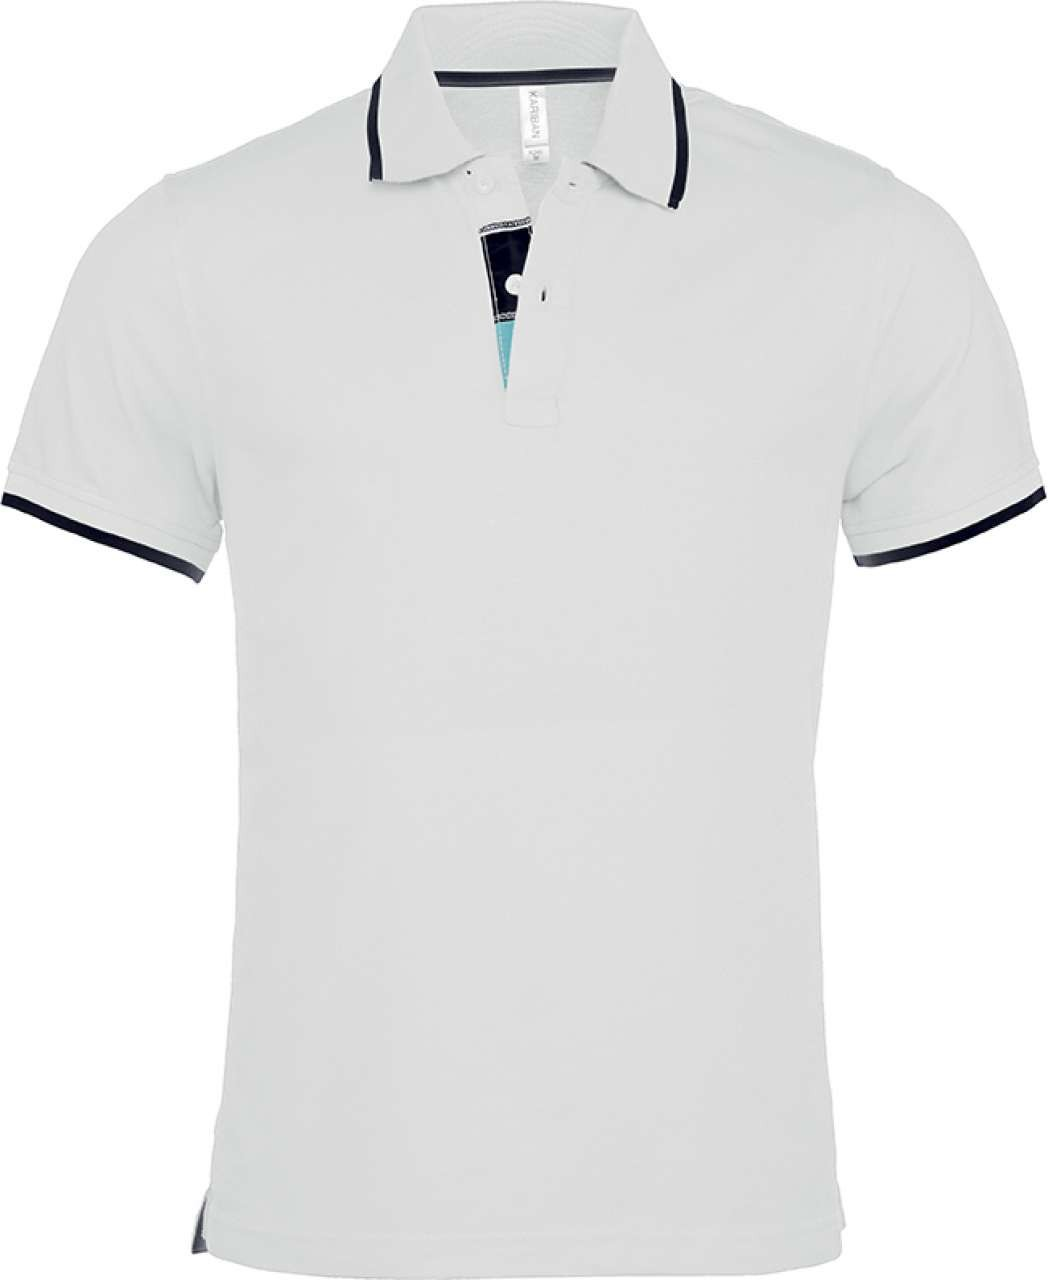 Black t shirt with white collar - Kariban Men S Polo Shirt White Navy Xl T Shirt